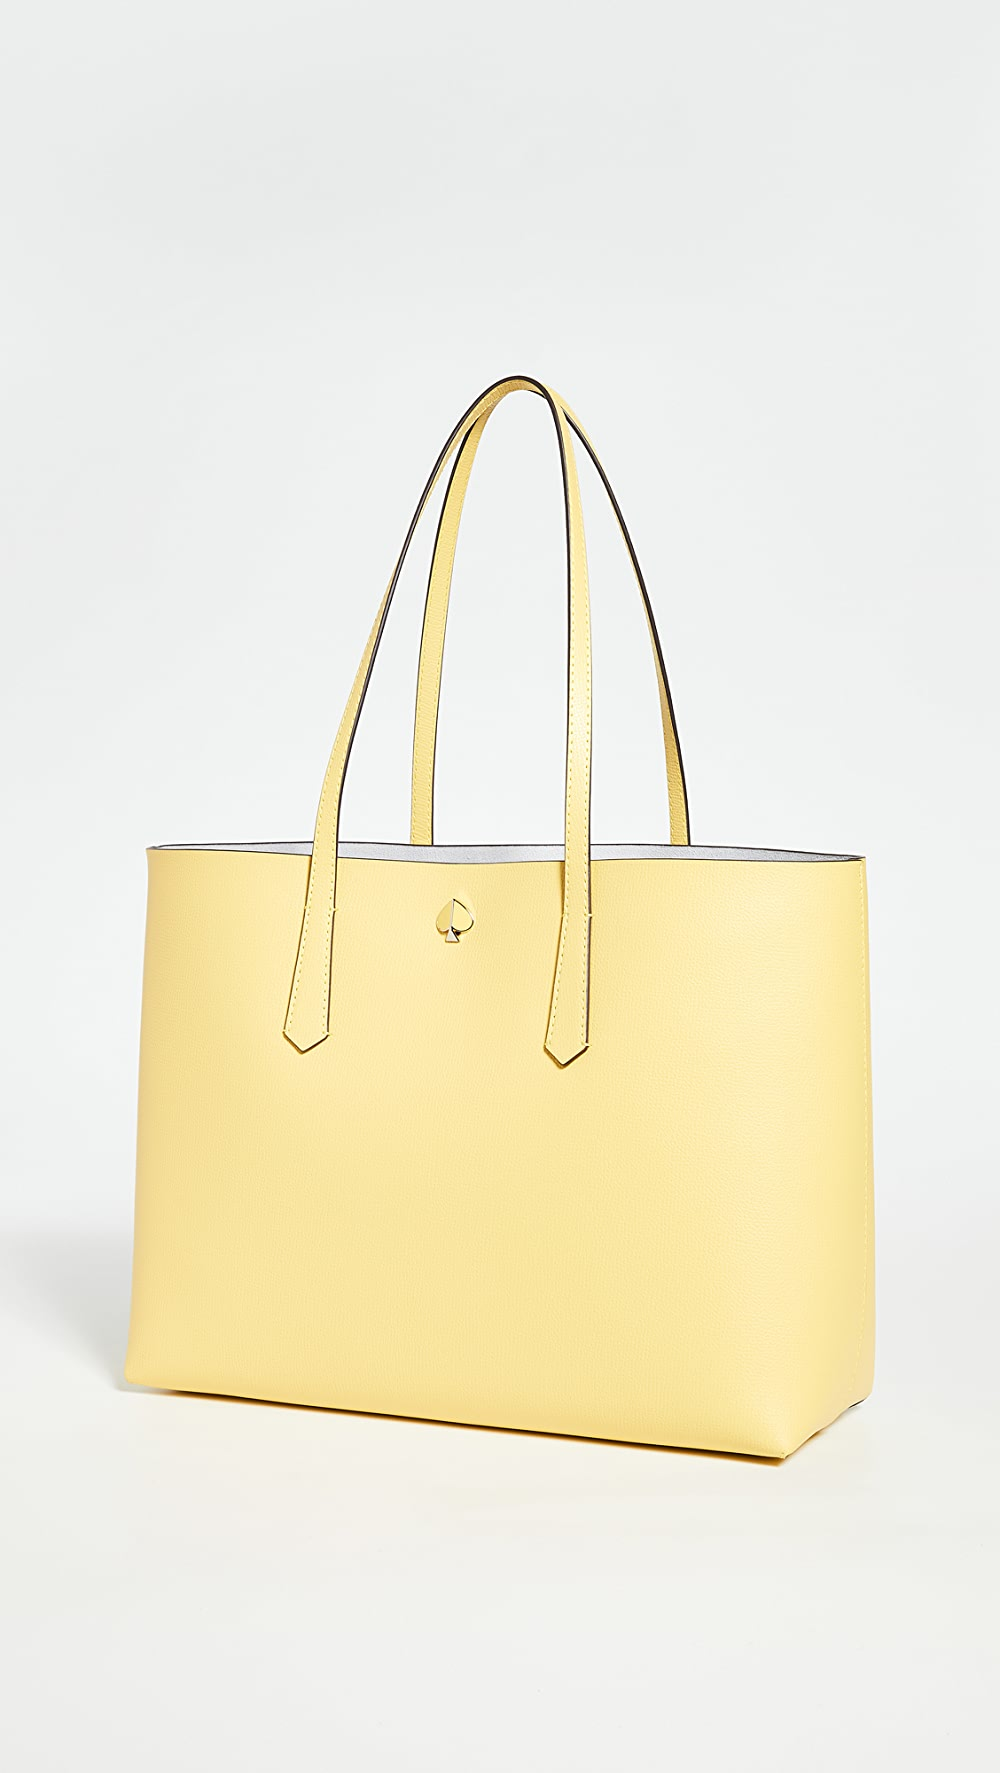 2019 Latest Design Kate Spade New York - Molly Large Tote Bright Luster